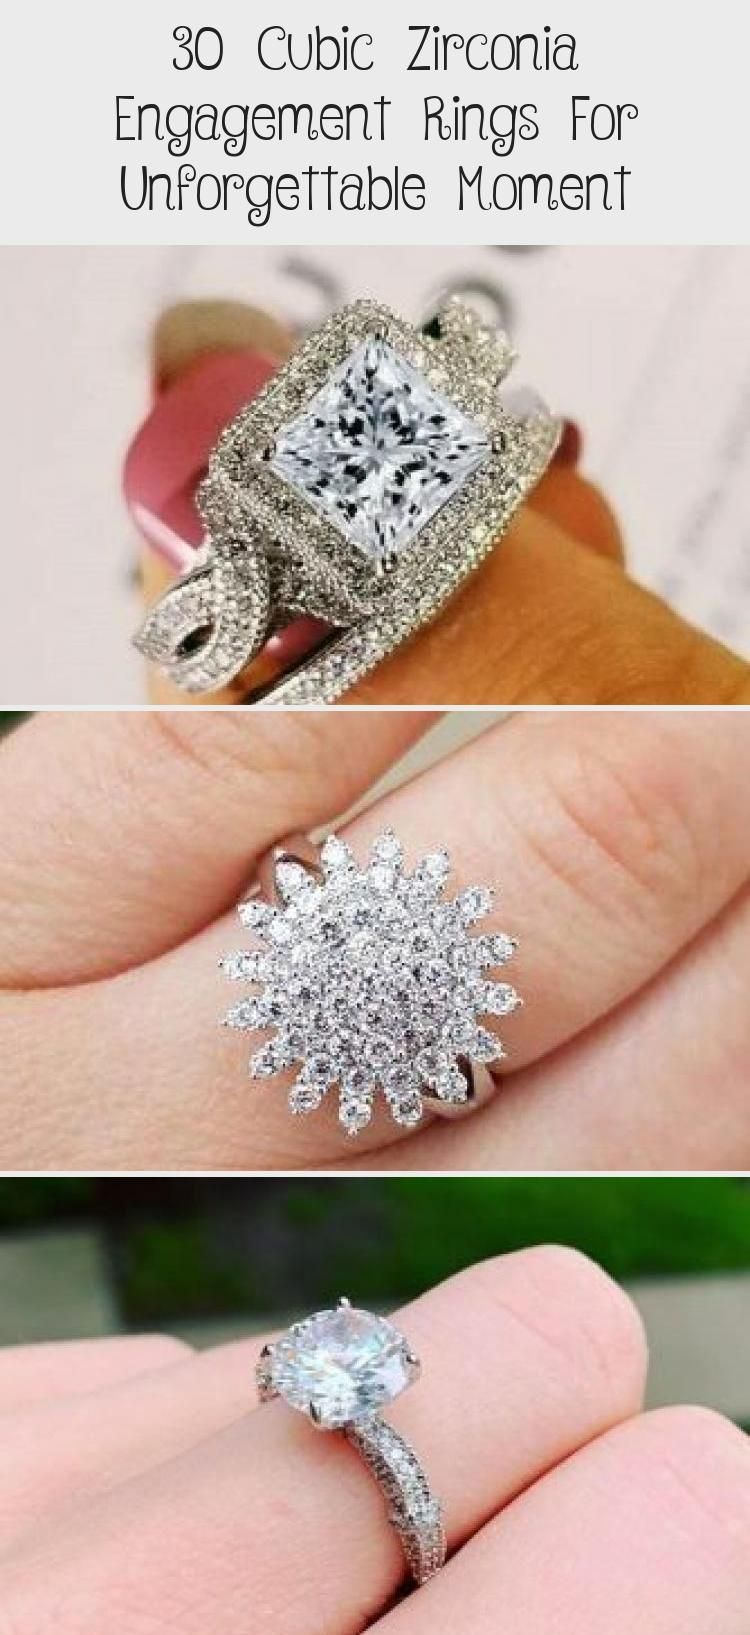 Cubic Zirconia Engagement Rings White Gold Engagement Rings Ro Round White Gold Engagement Rings Large Diamond Engagement Rings Cubic Zirconia Engagement Rings